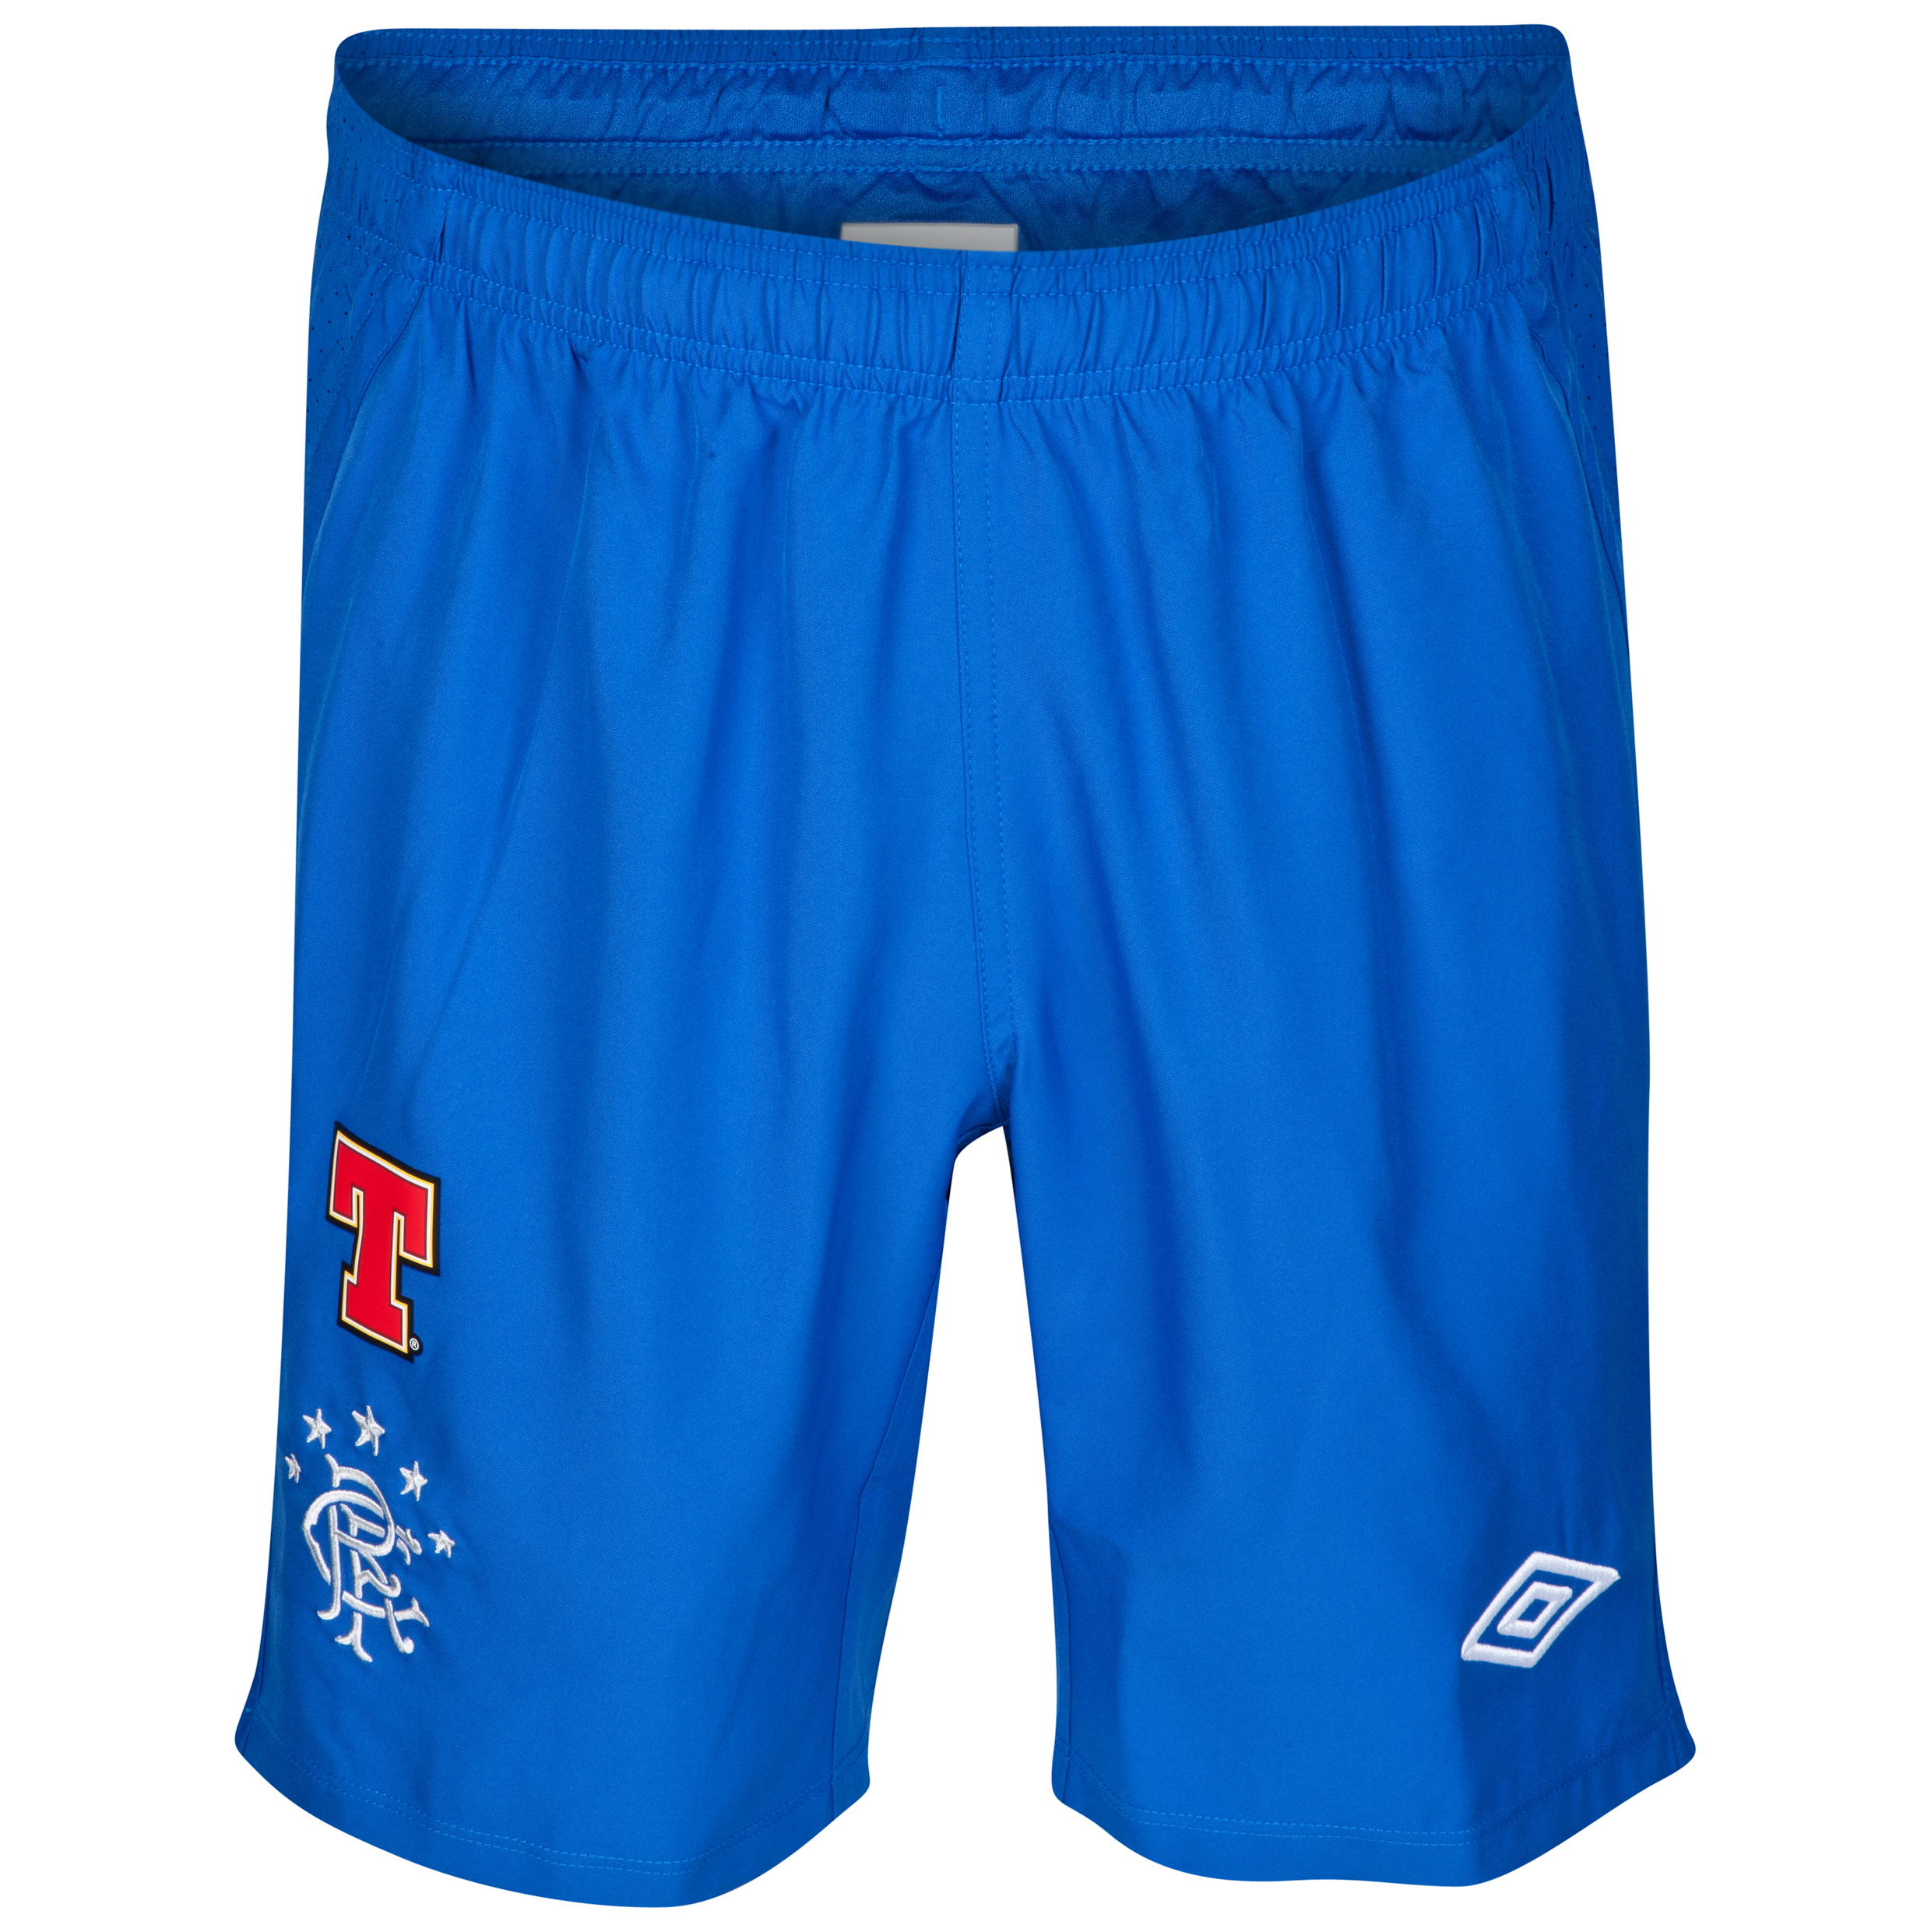 Glasgow Rangers Away Shorts 2012/13 - Kids